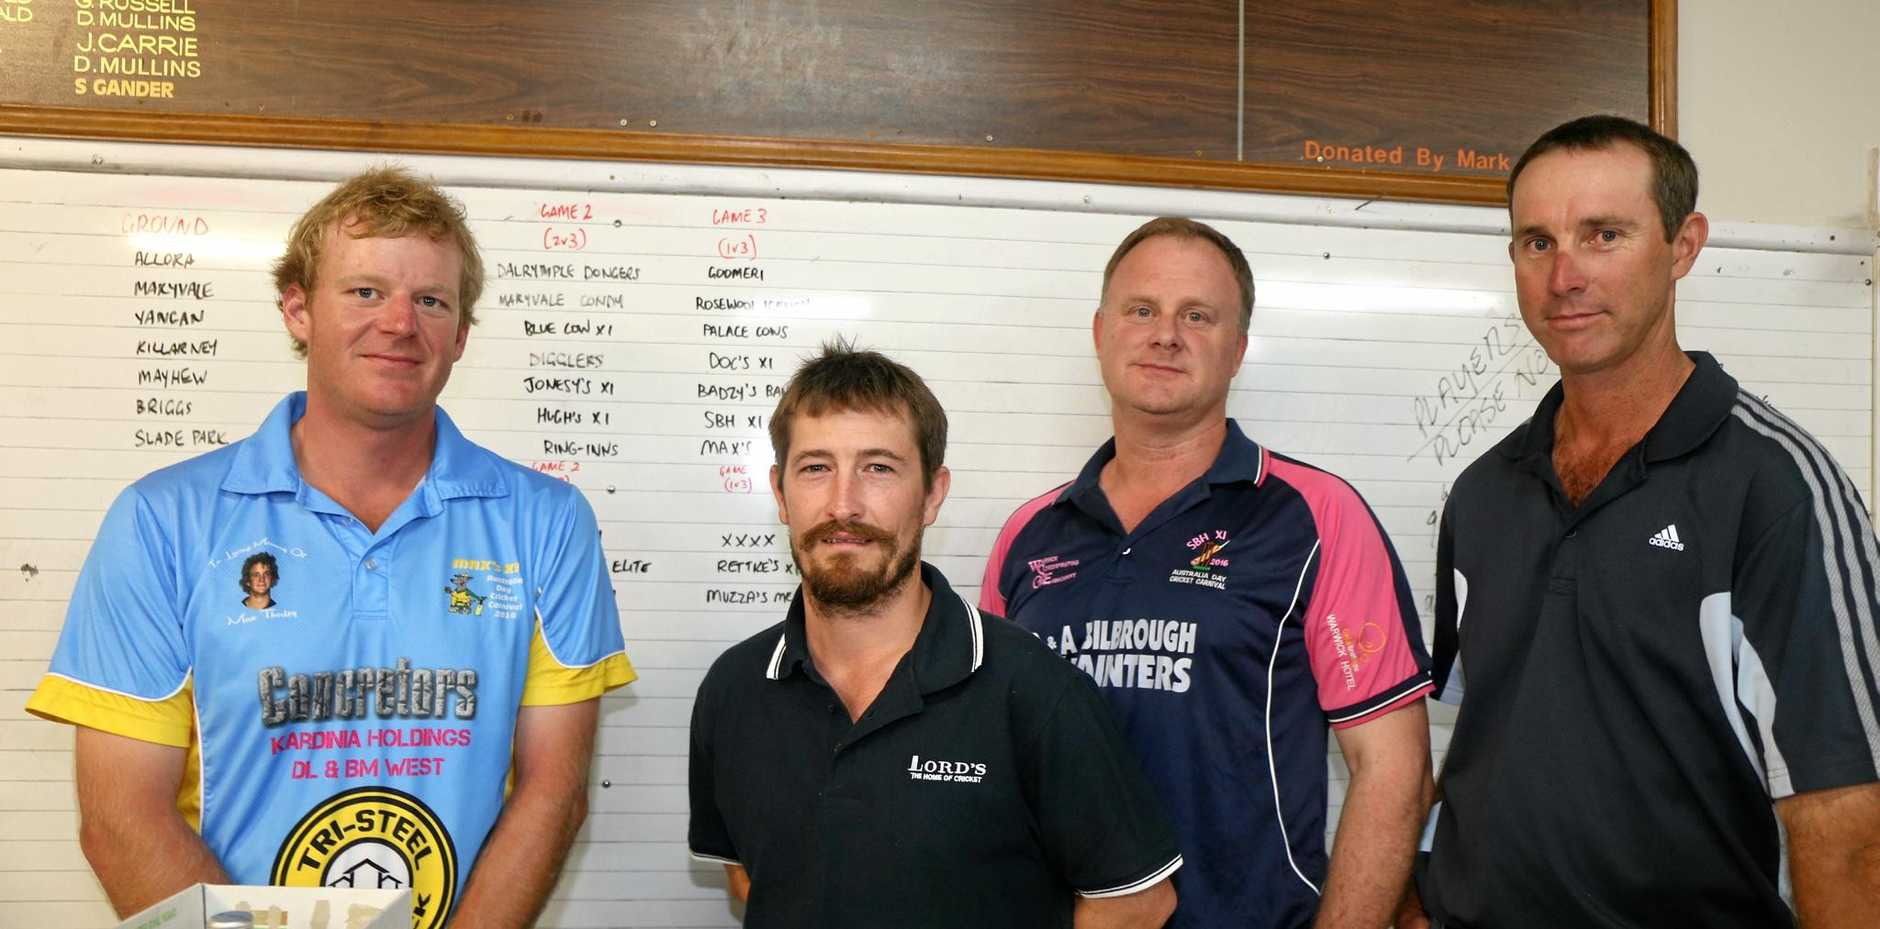 WCA carnival committee representatives include Geoff Thorley, Shaun O'Leary, Colin O'Brien and Chris Cantwell